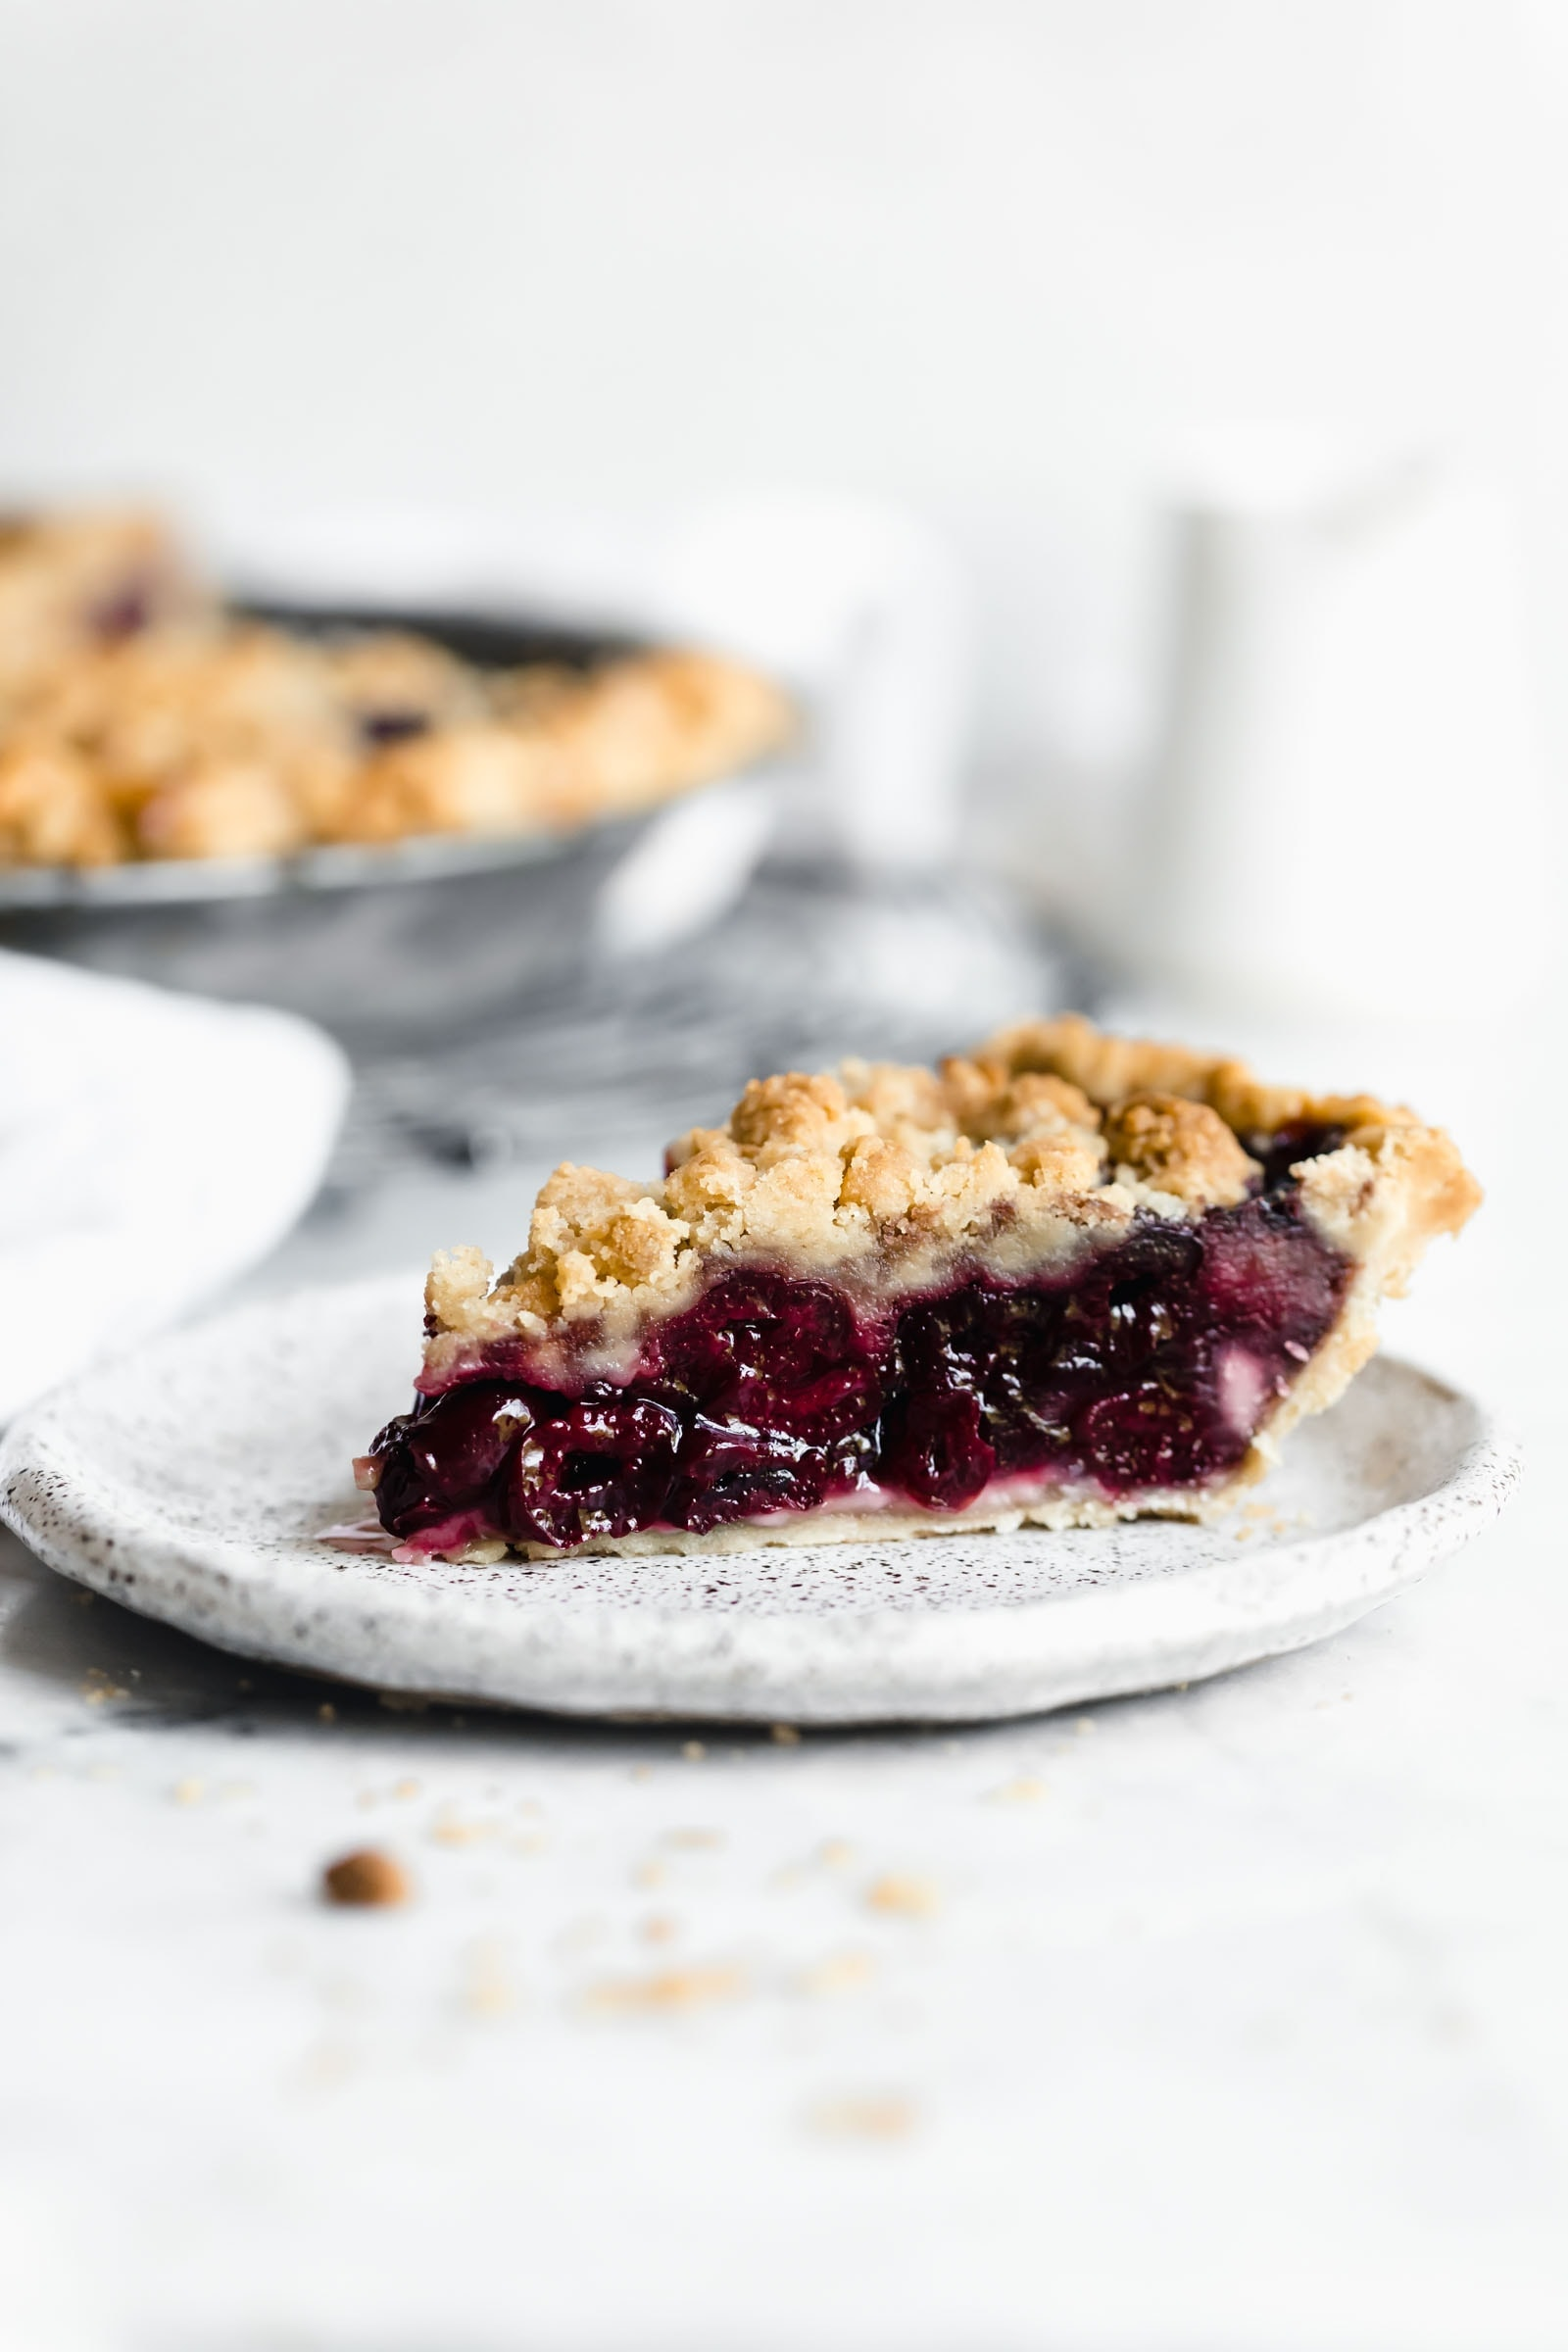 Introducing our favorite summer pie: Cherry Crumb Pie. A flaky pie crust filled with fresh cherries, and topped with crumble